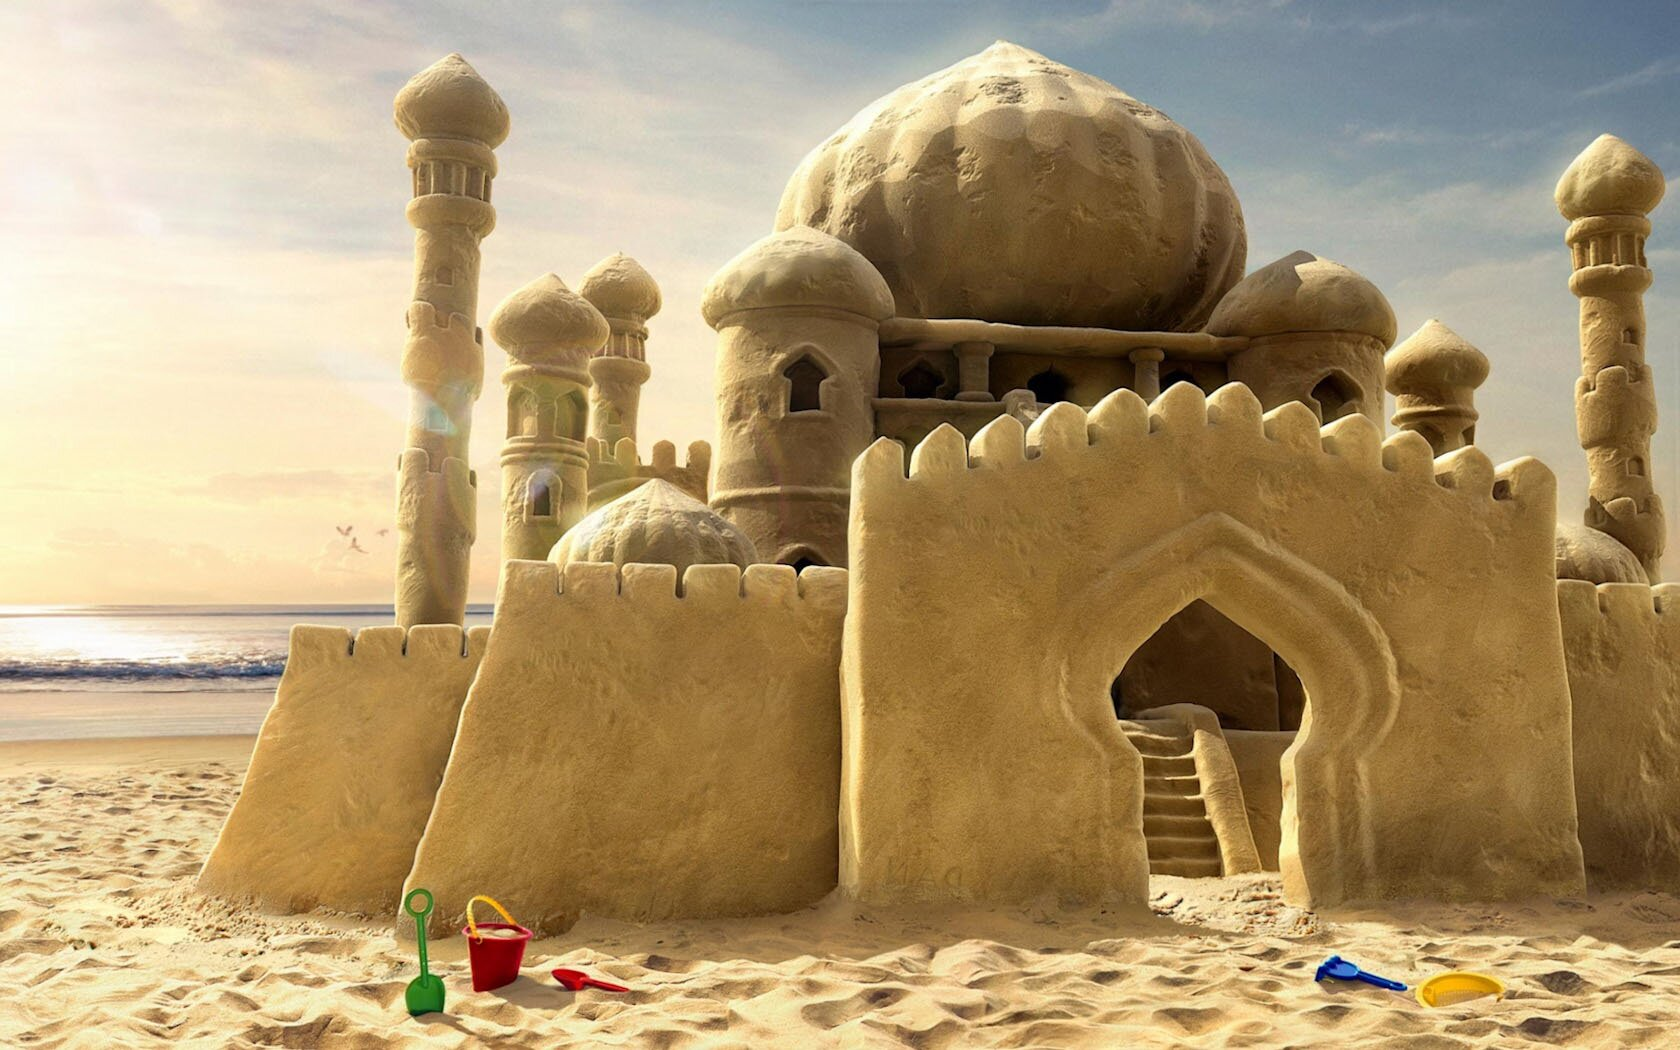 The 15 best sand castles of all time mostbeautifulthings for Fond ecran ete